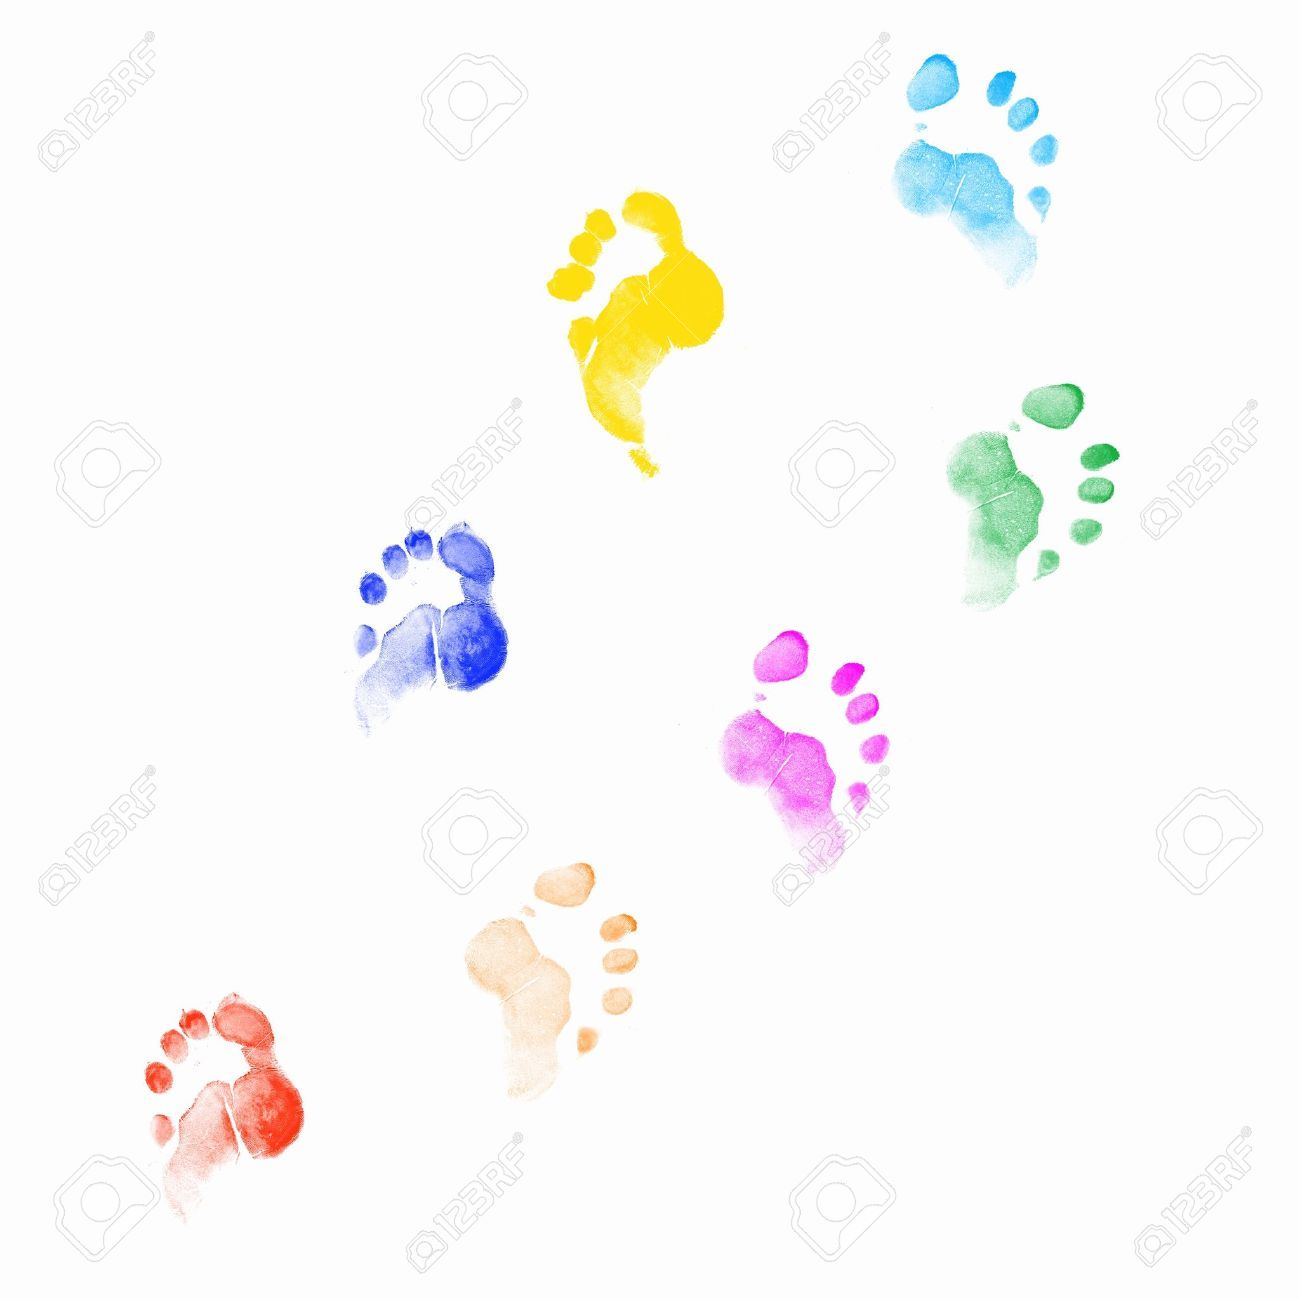 Colourful human foot prints on white background Stock Photo - 15106858